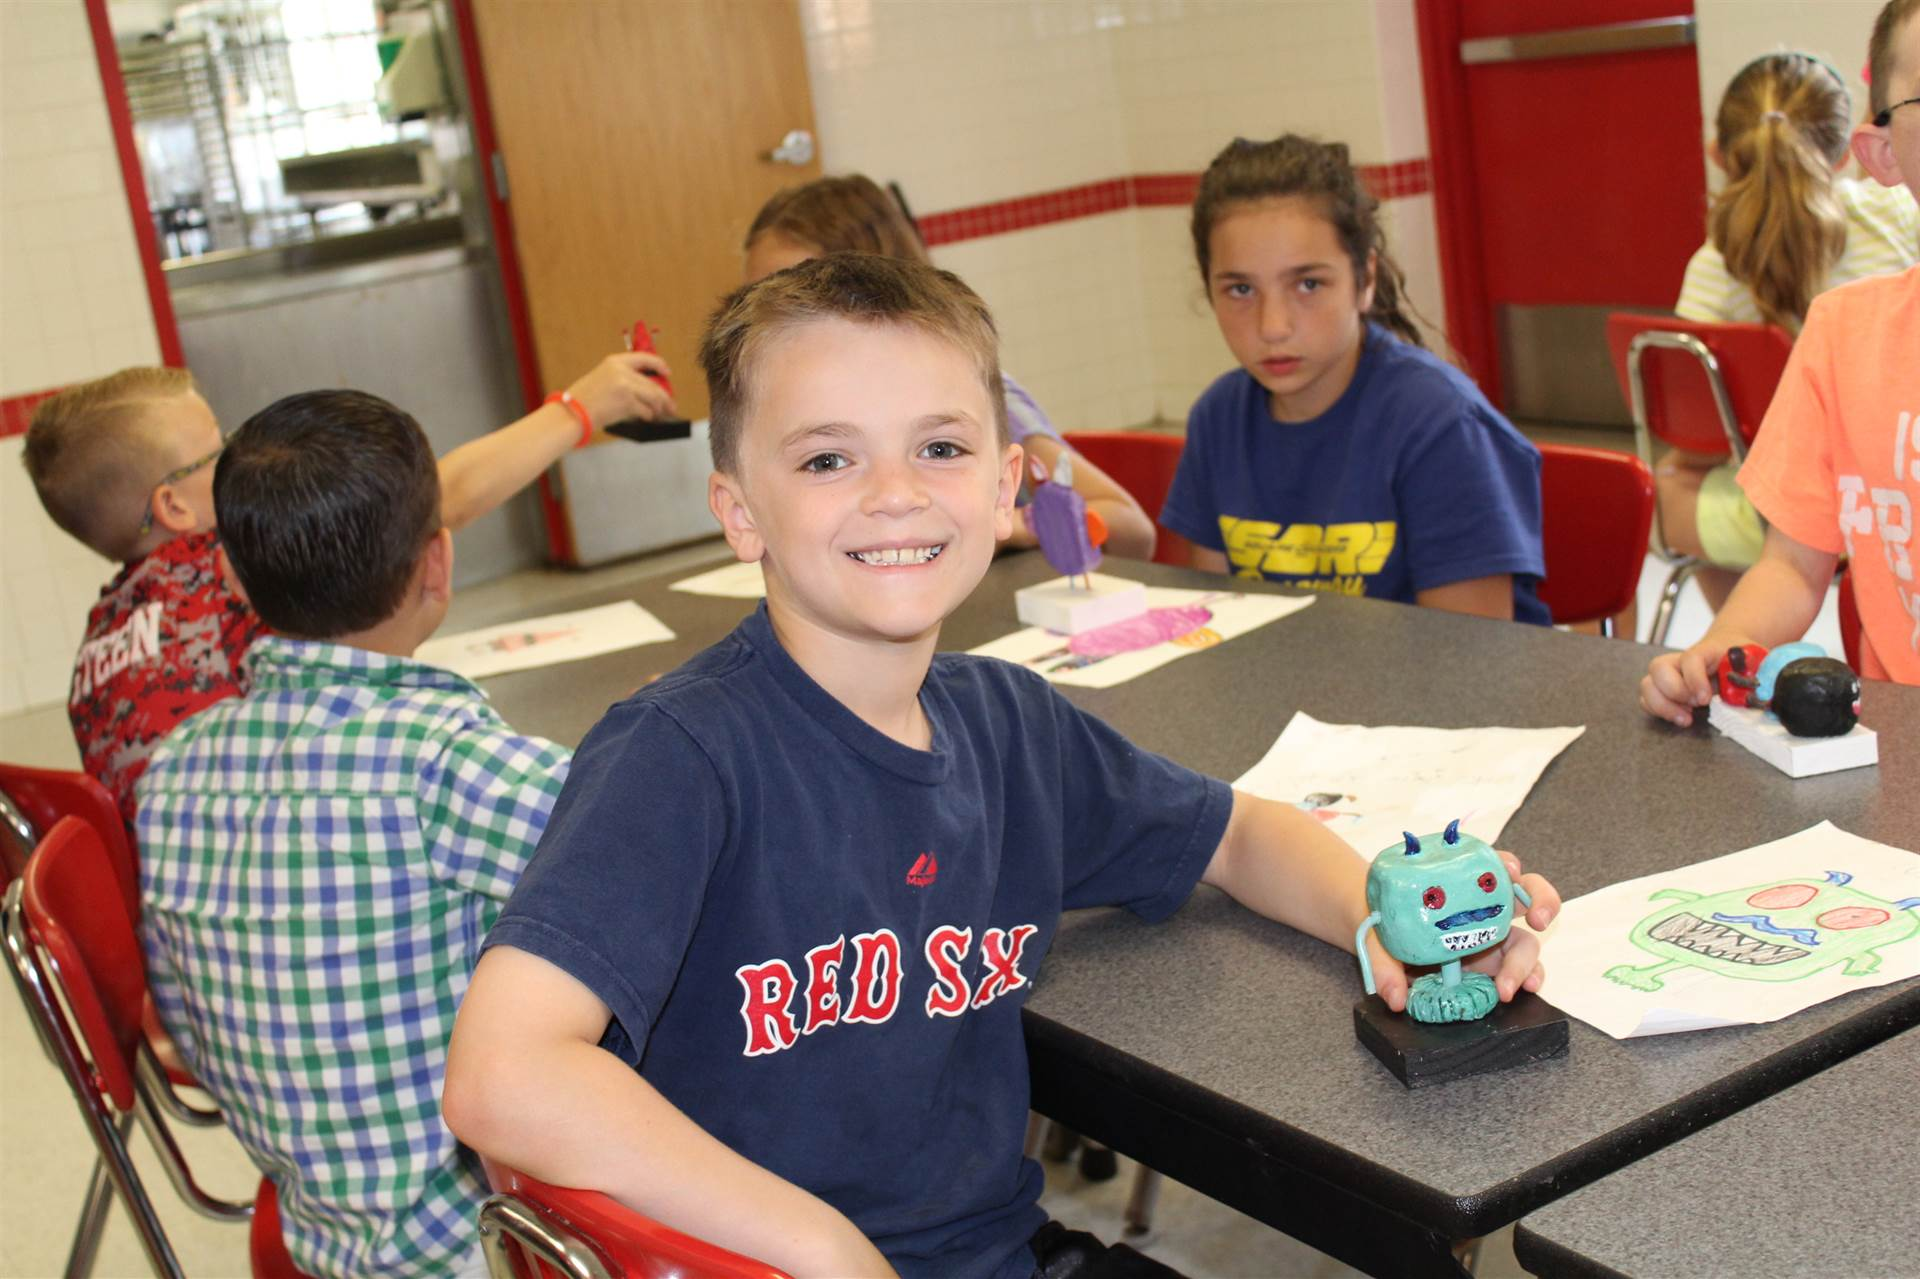 boy smiles sitting with 3 d monster sculpture in one hand on the cafeteria table